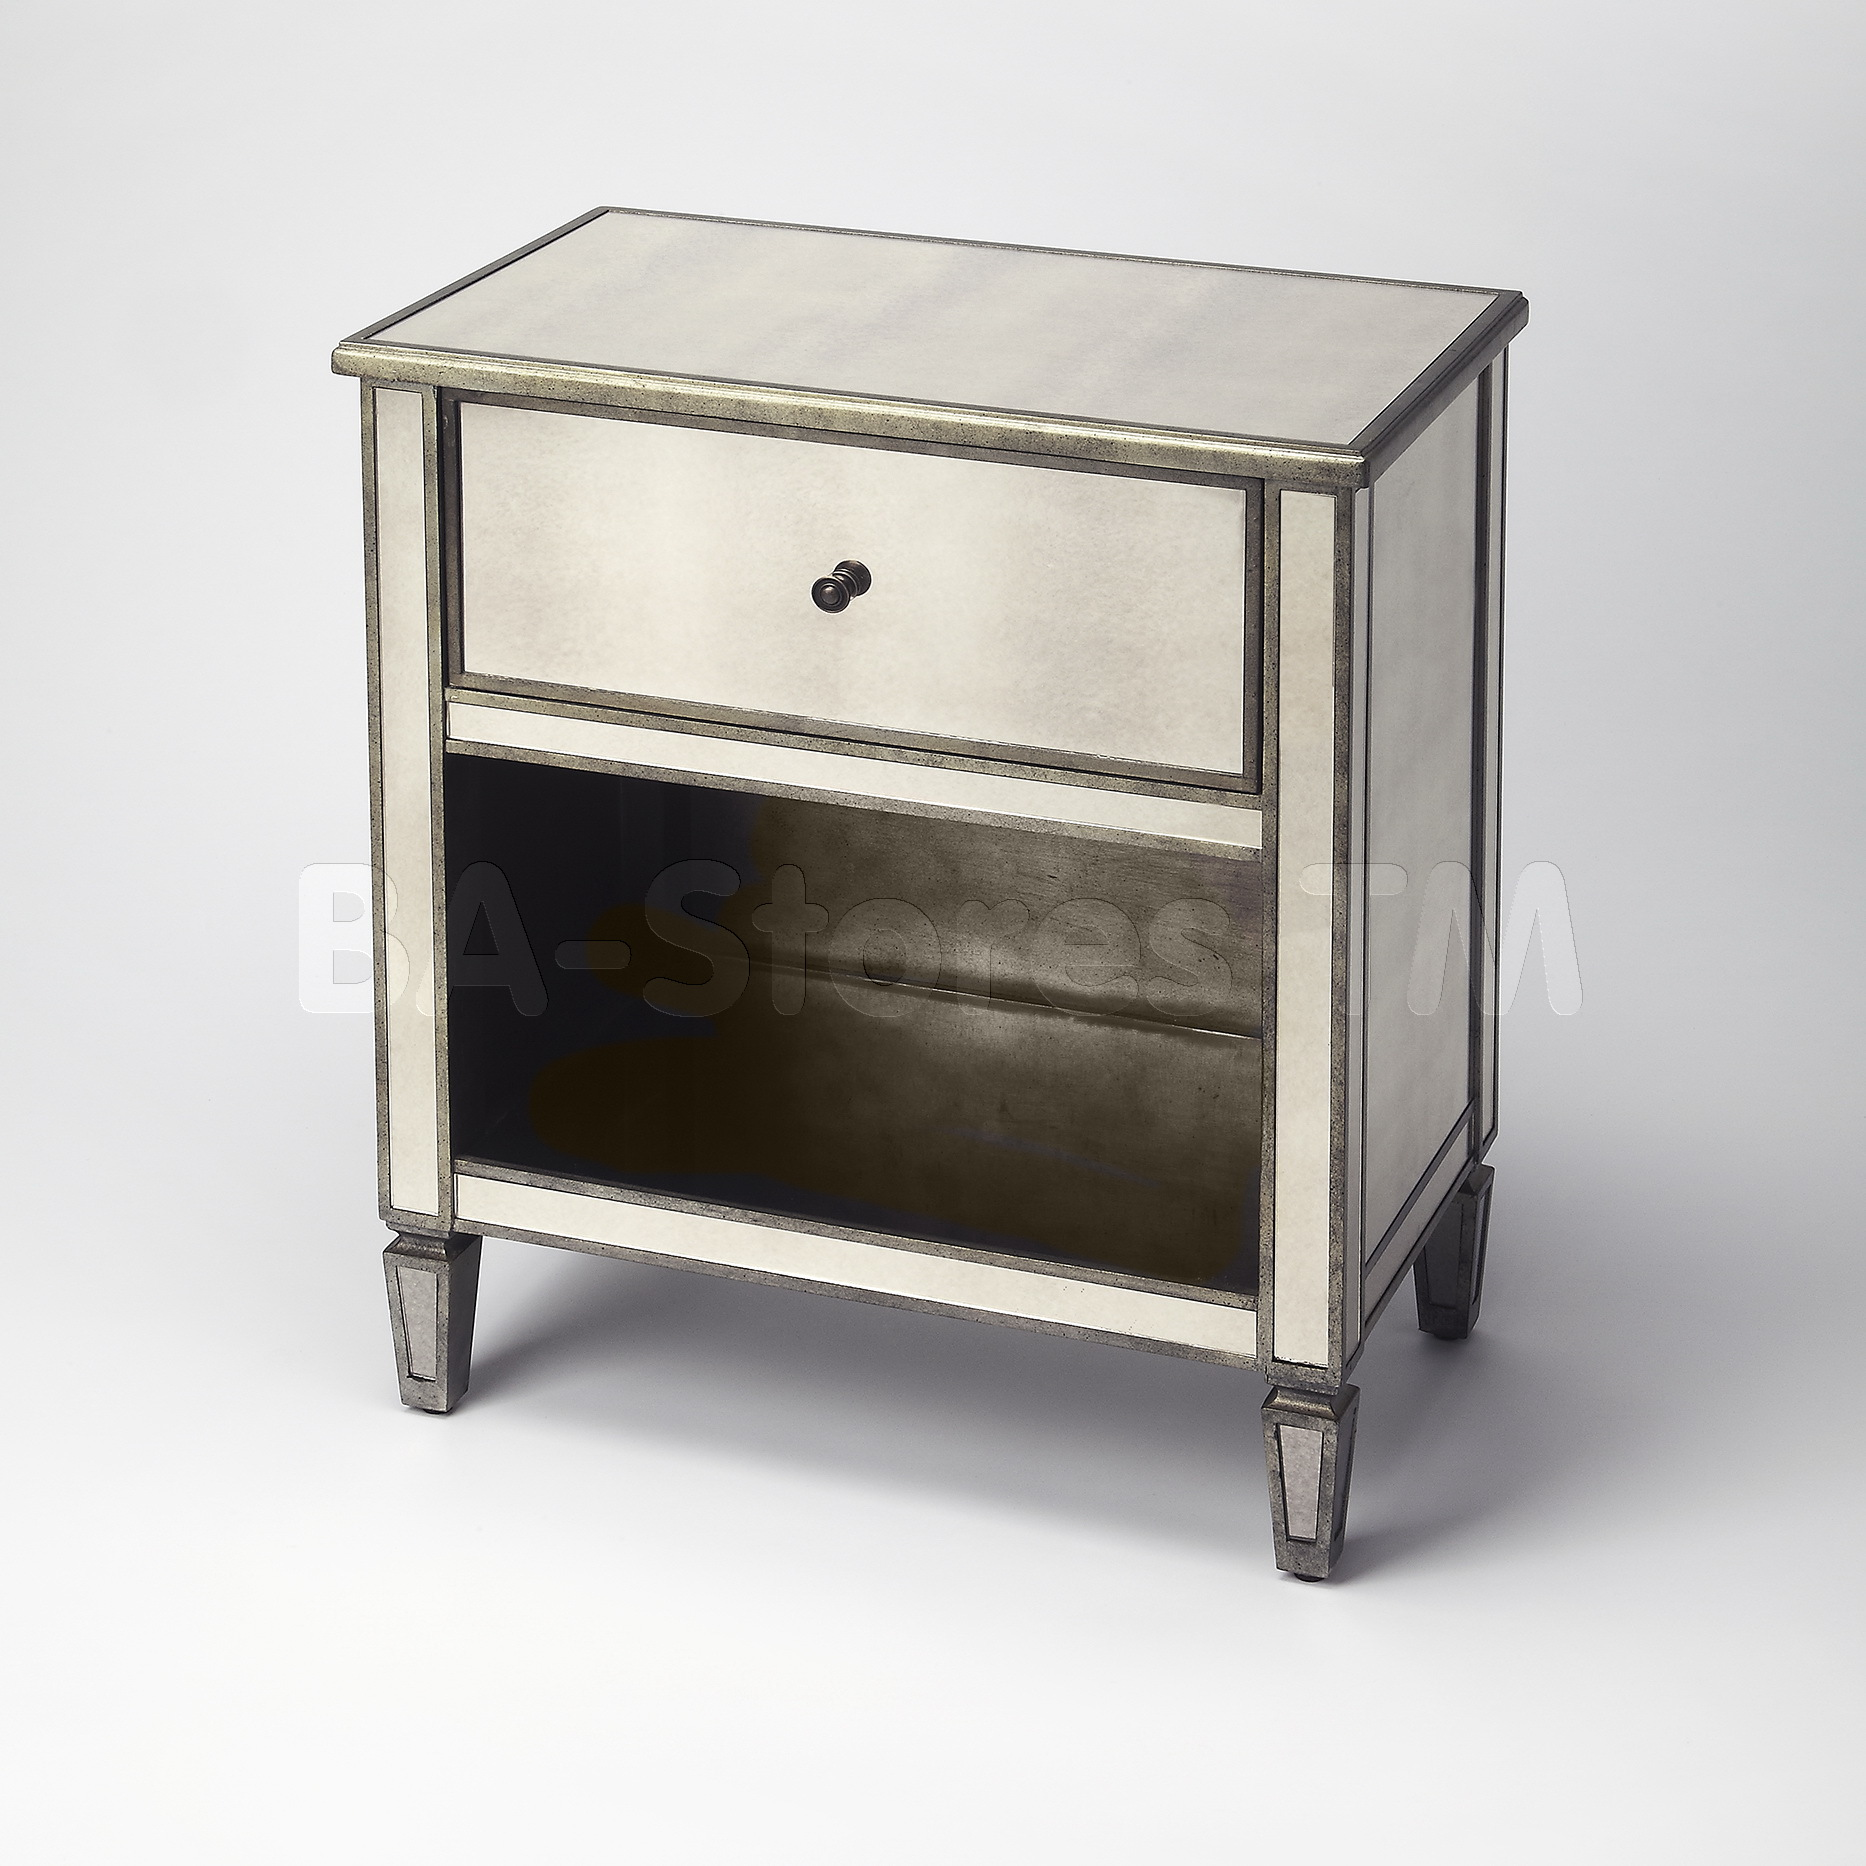 mirrored accent chest circlecider home ideas jane mackenzie table tables ikea square trunk coffee battery operated led lights matching living room furniture side pink contemporary